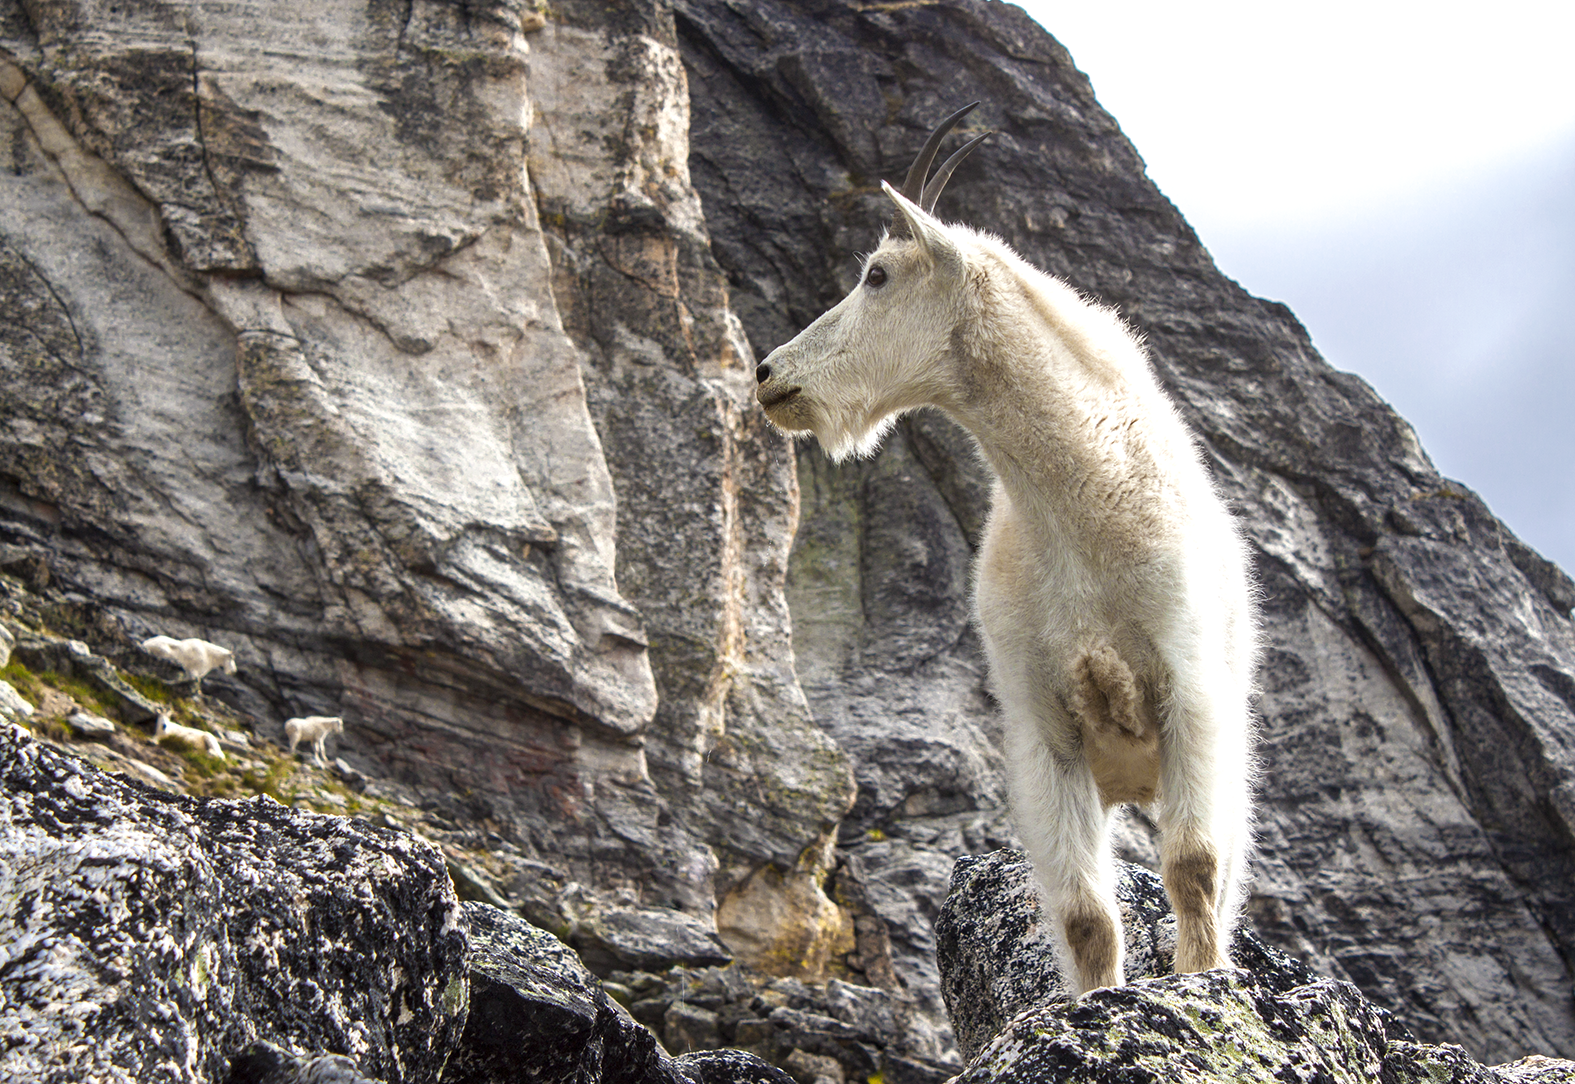 A furry white goat perched on a rock.